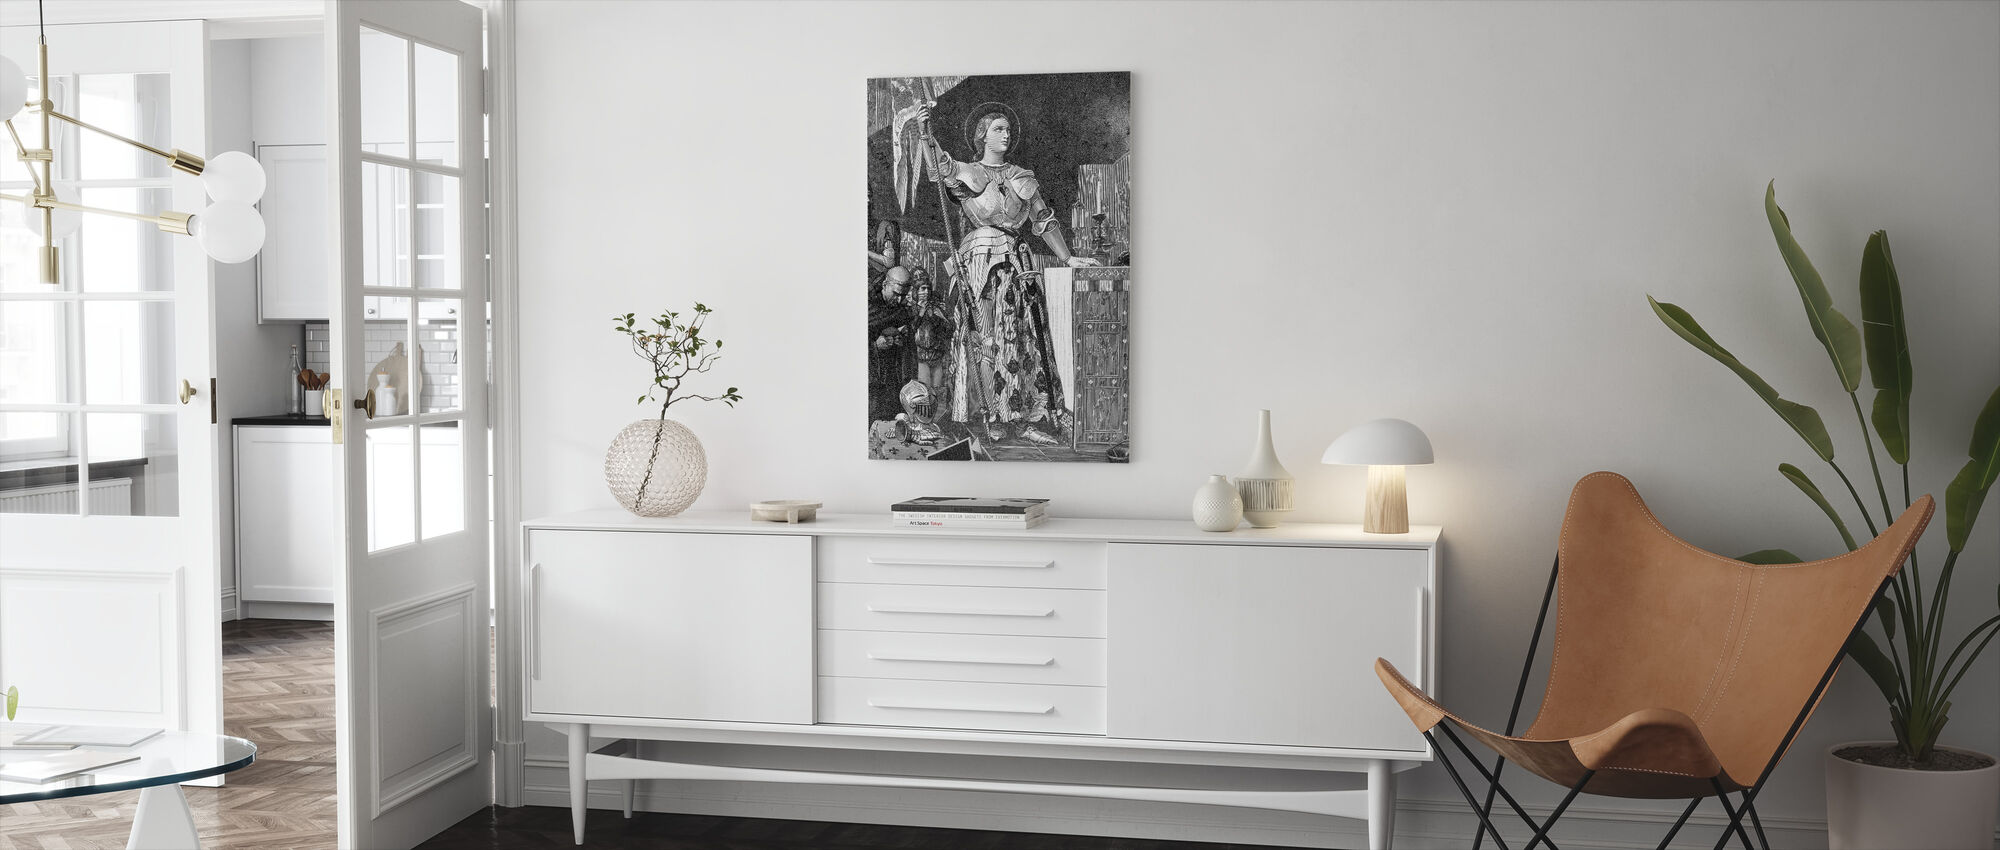 Joan of Arc Maid of Orleans - Canvas print - Living Room